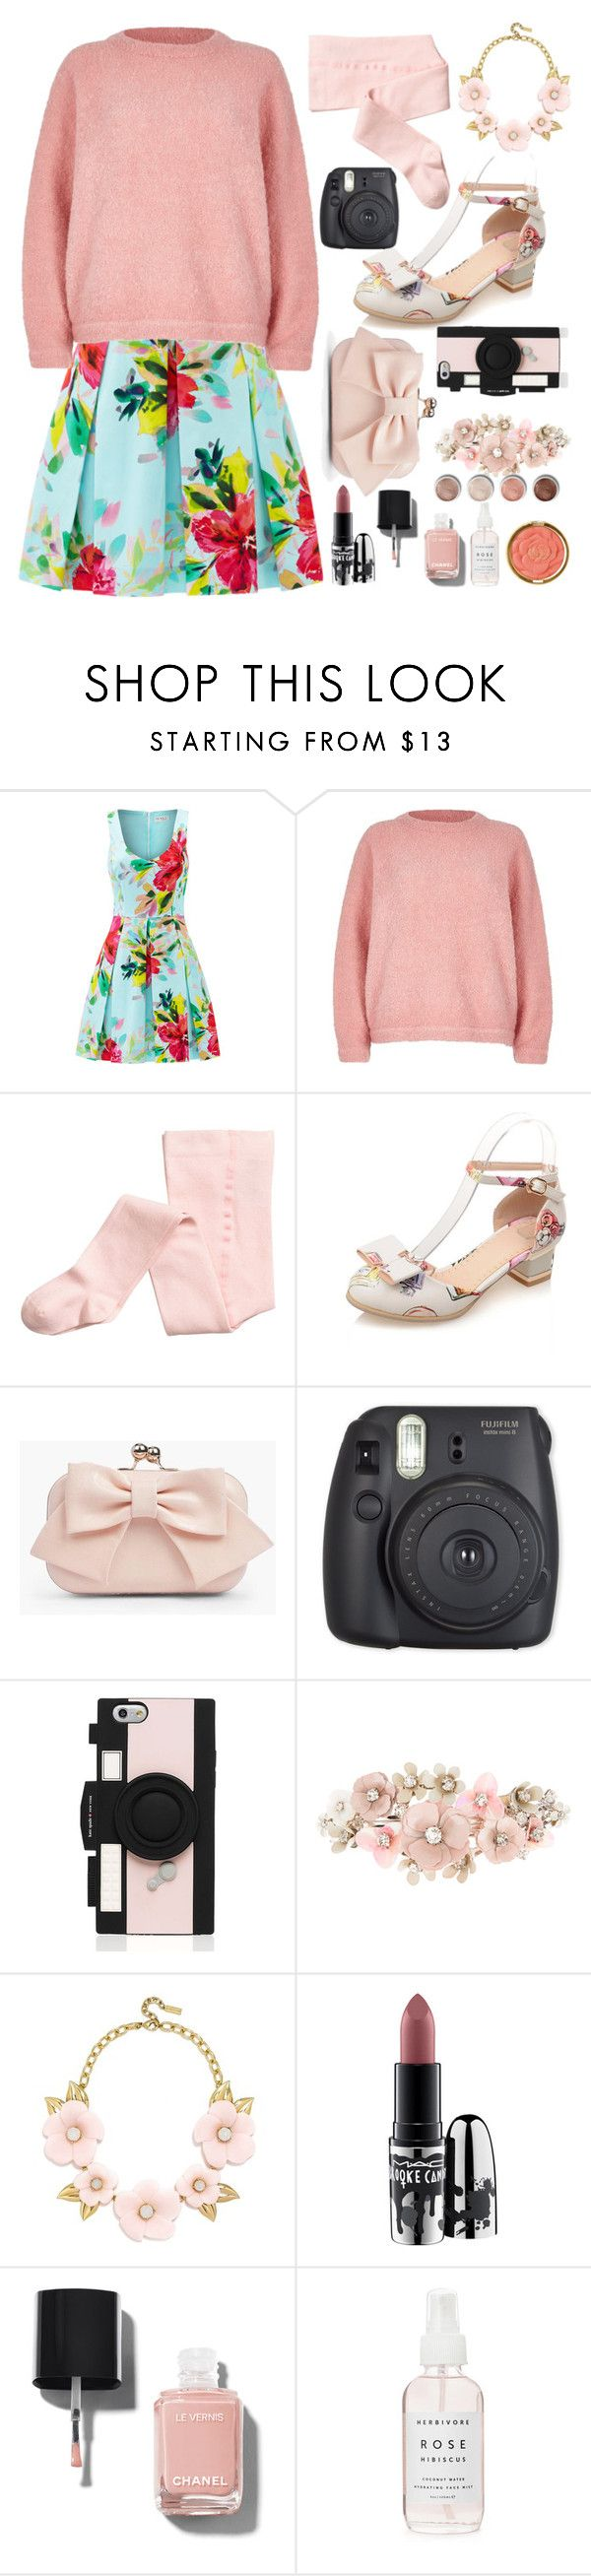 Louisa Clark// Pretty in Pink by princess-of-trenzalore ❤ liked on Polyvore featuring Trina Turk, River Island, Boohoo, Kate Spade, Accessorize, BaubleBar, MAC Cosmetics, Chanel, Terre Mère and Milani